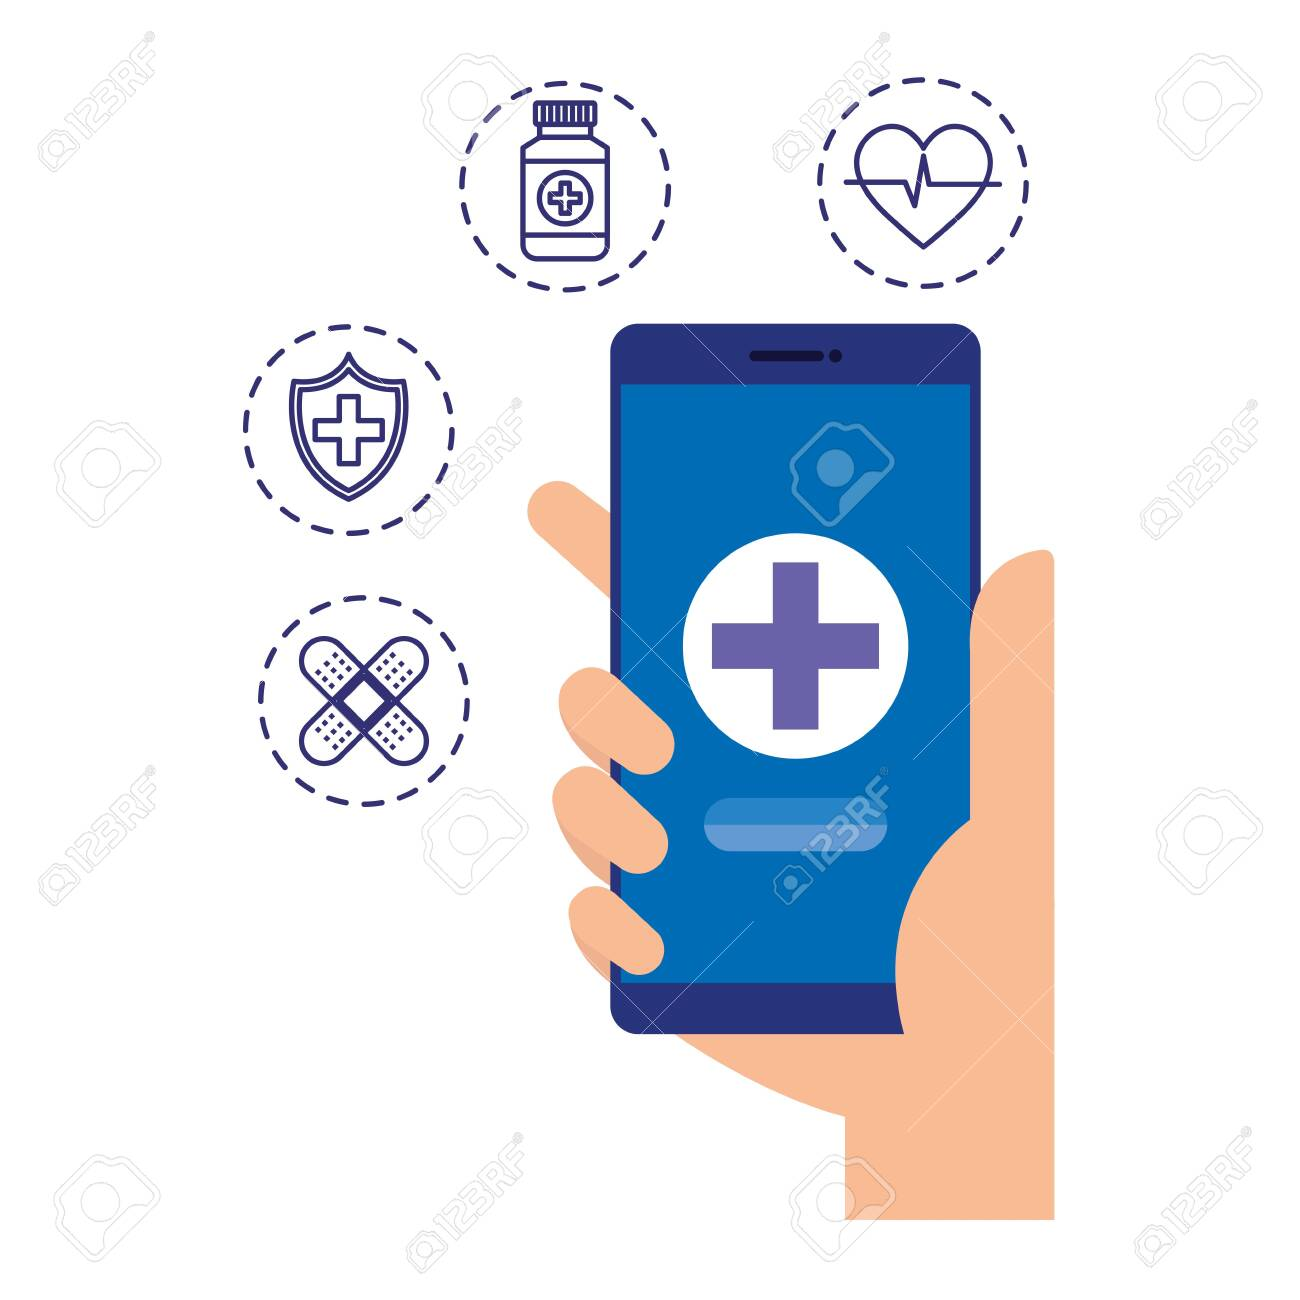 hand using smartphone with telemedicine icons vector illustration design - 123873827